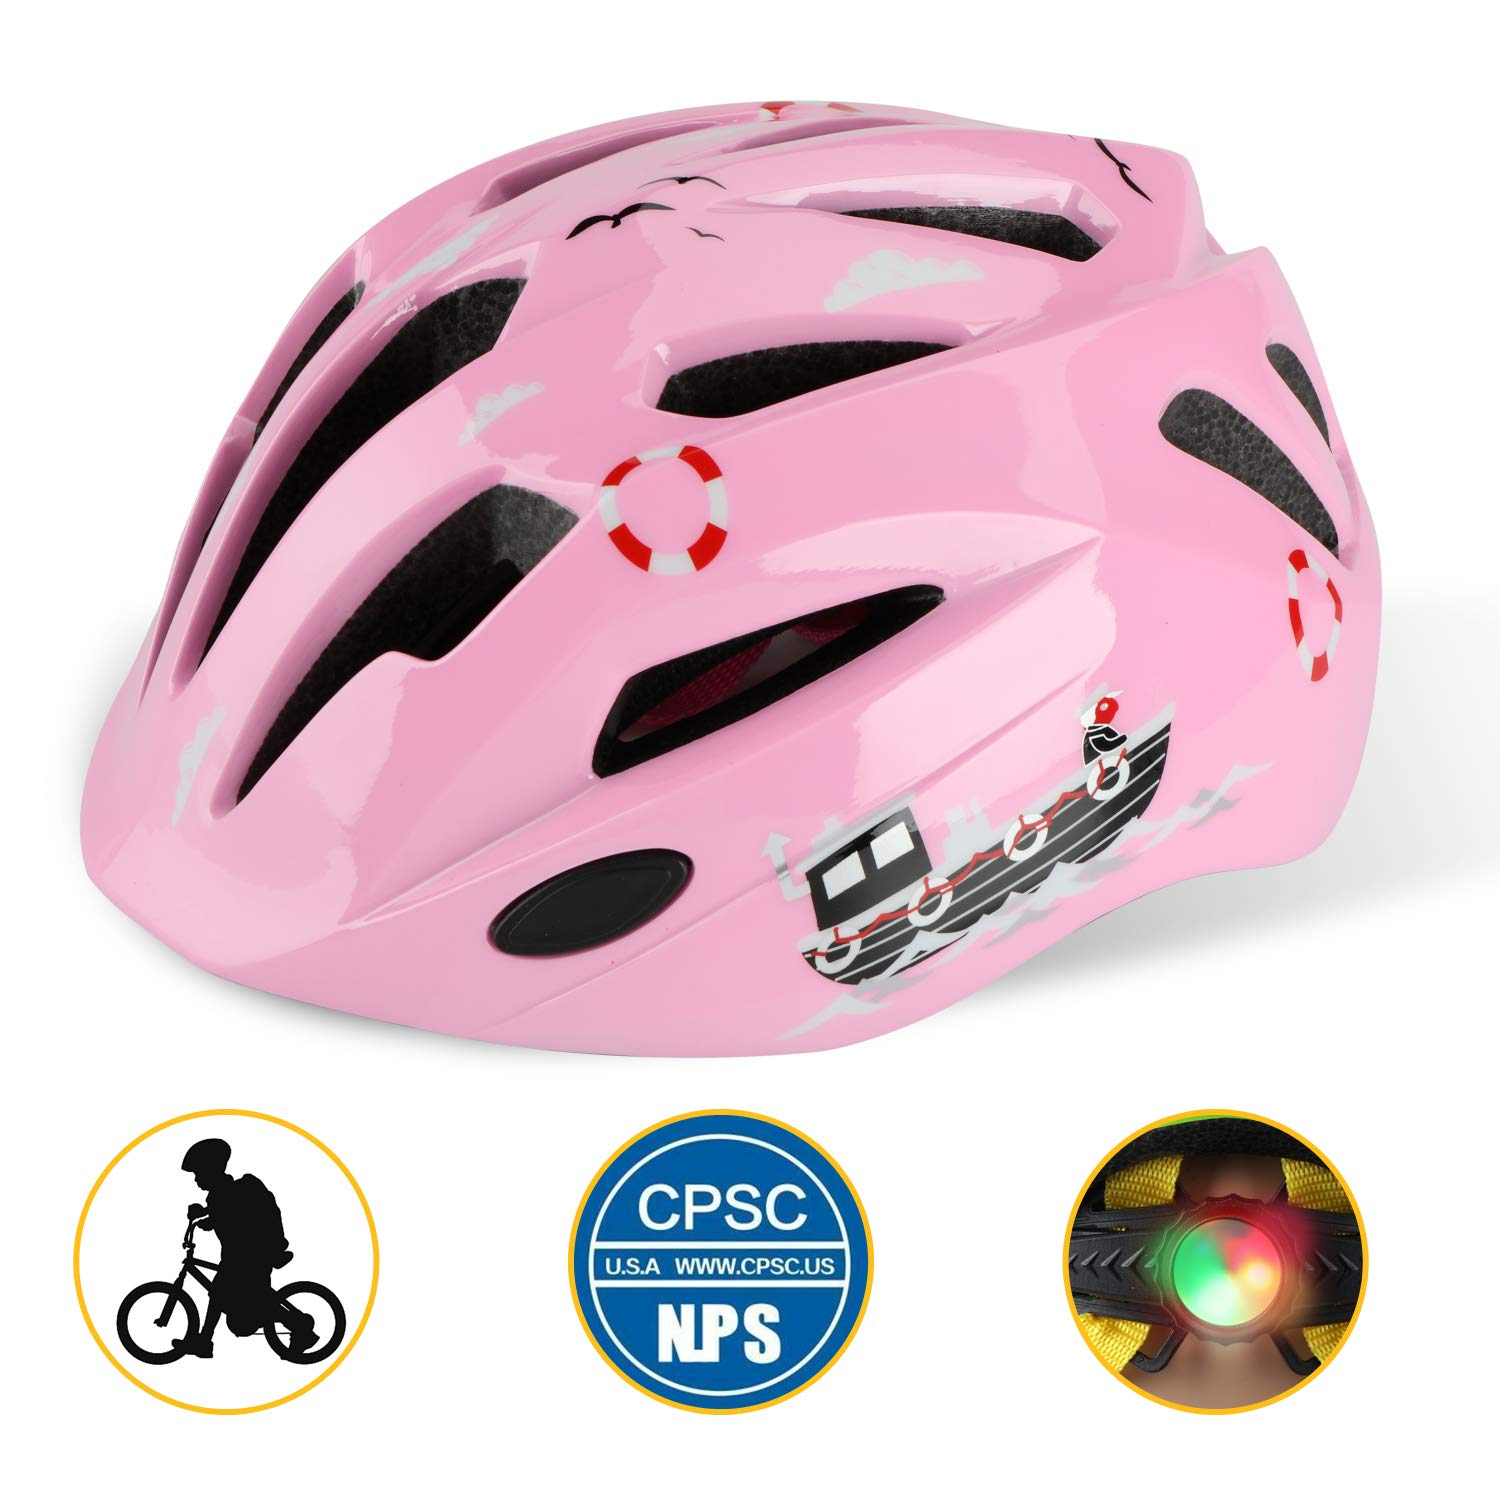 Basecamp Kids Bike Helmet, Children Cycling Helmet CPC Safety Certified 3D Cartoon Infant/Toddler Helmet Skating Boys and Girls Riding Scooter Safety Protective (Pink) by Shinmax